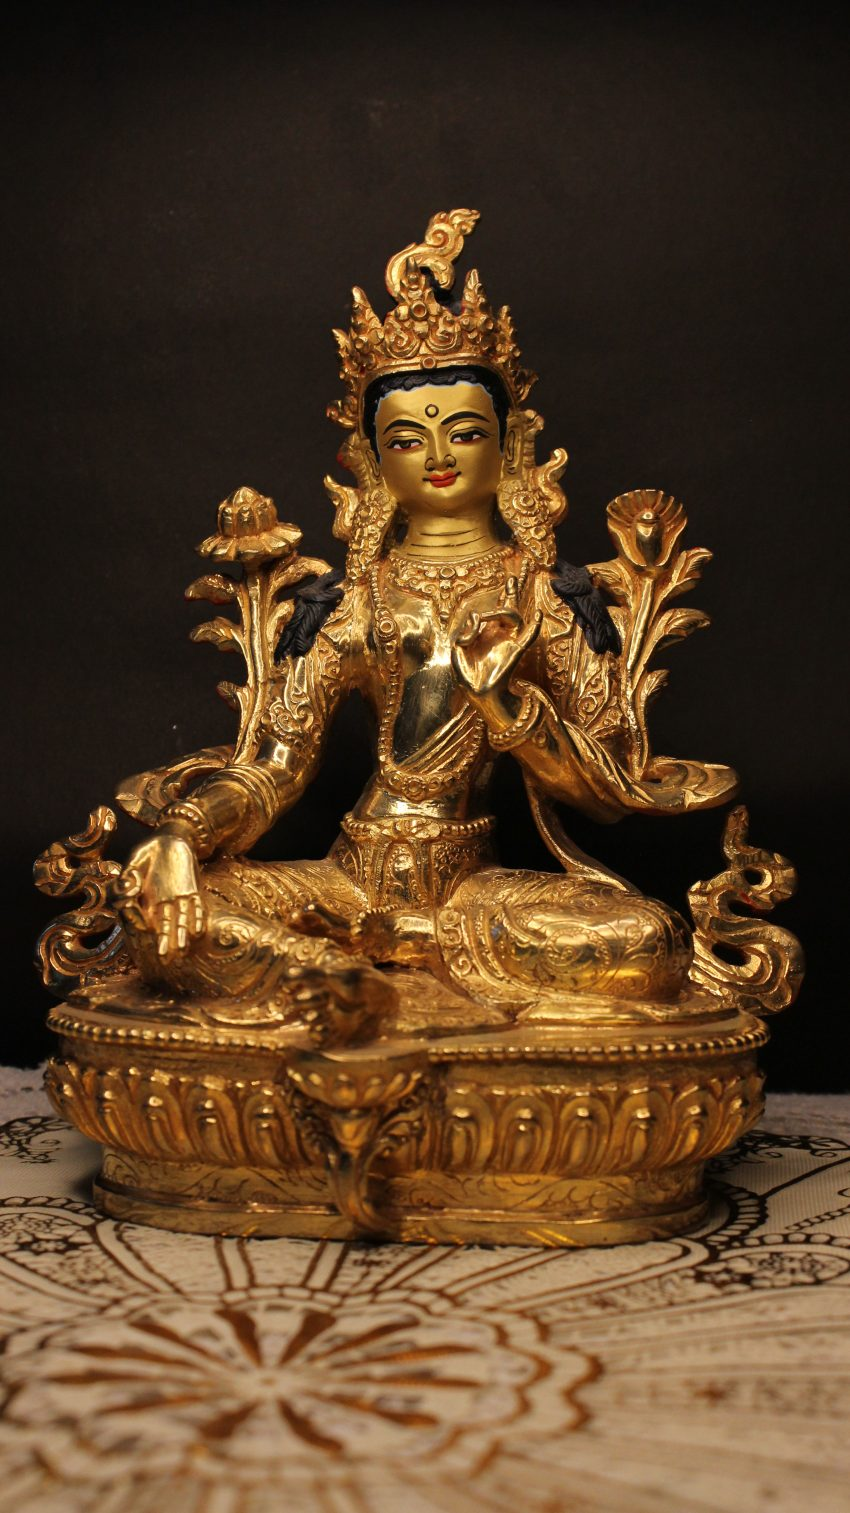 Golden Green Tara Buddha Statue